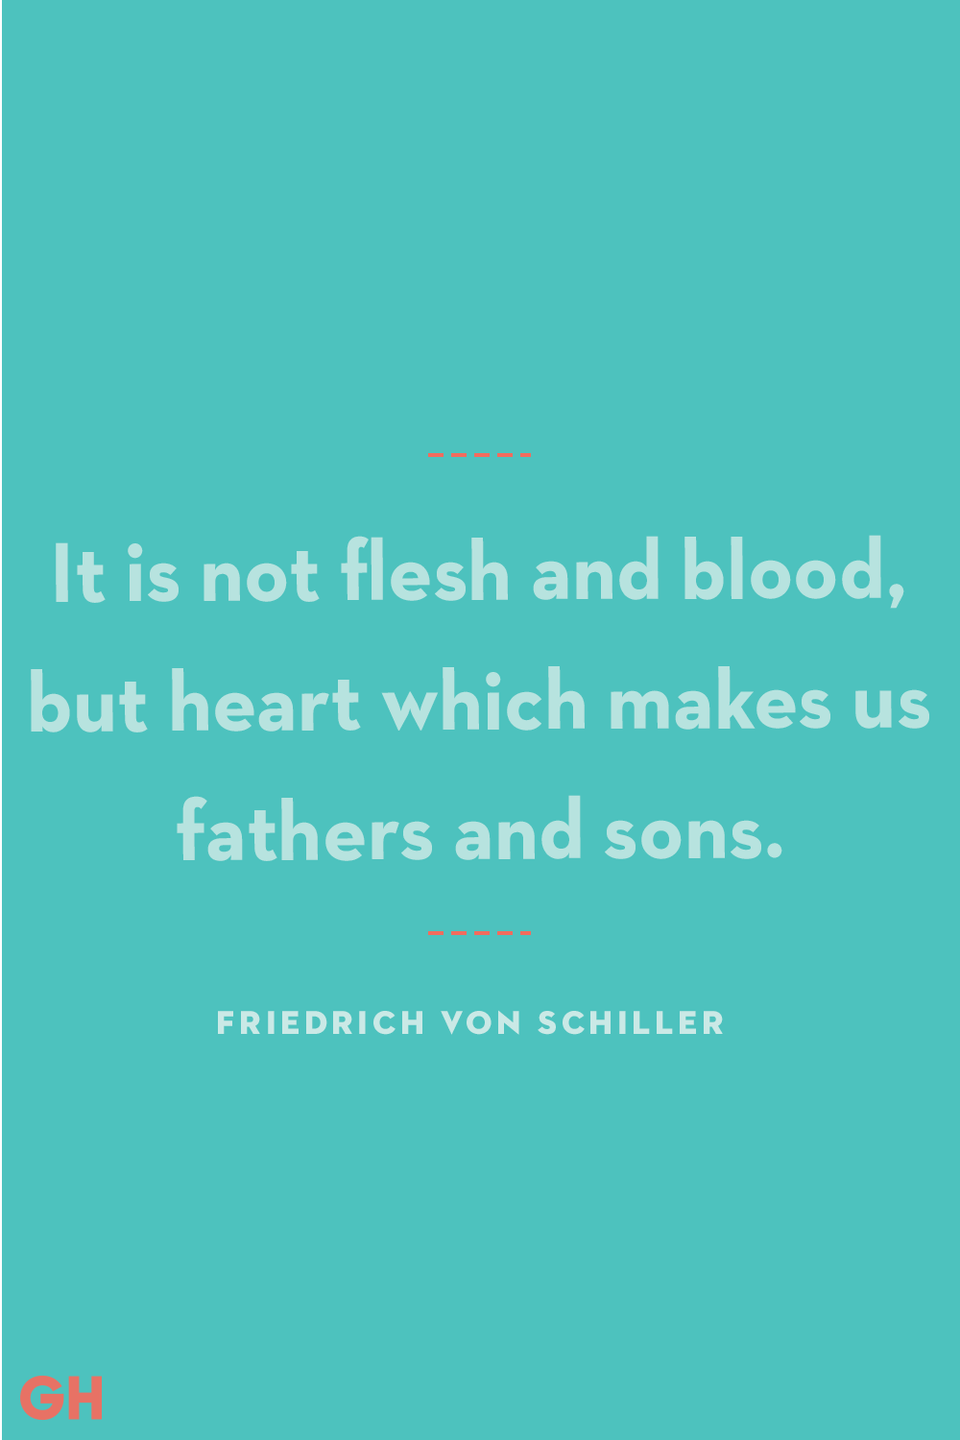 <p>It is not flesh and blood, but heart which makes us fathers and sons.</p>